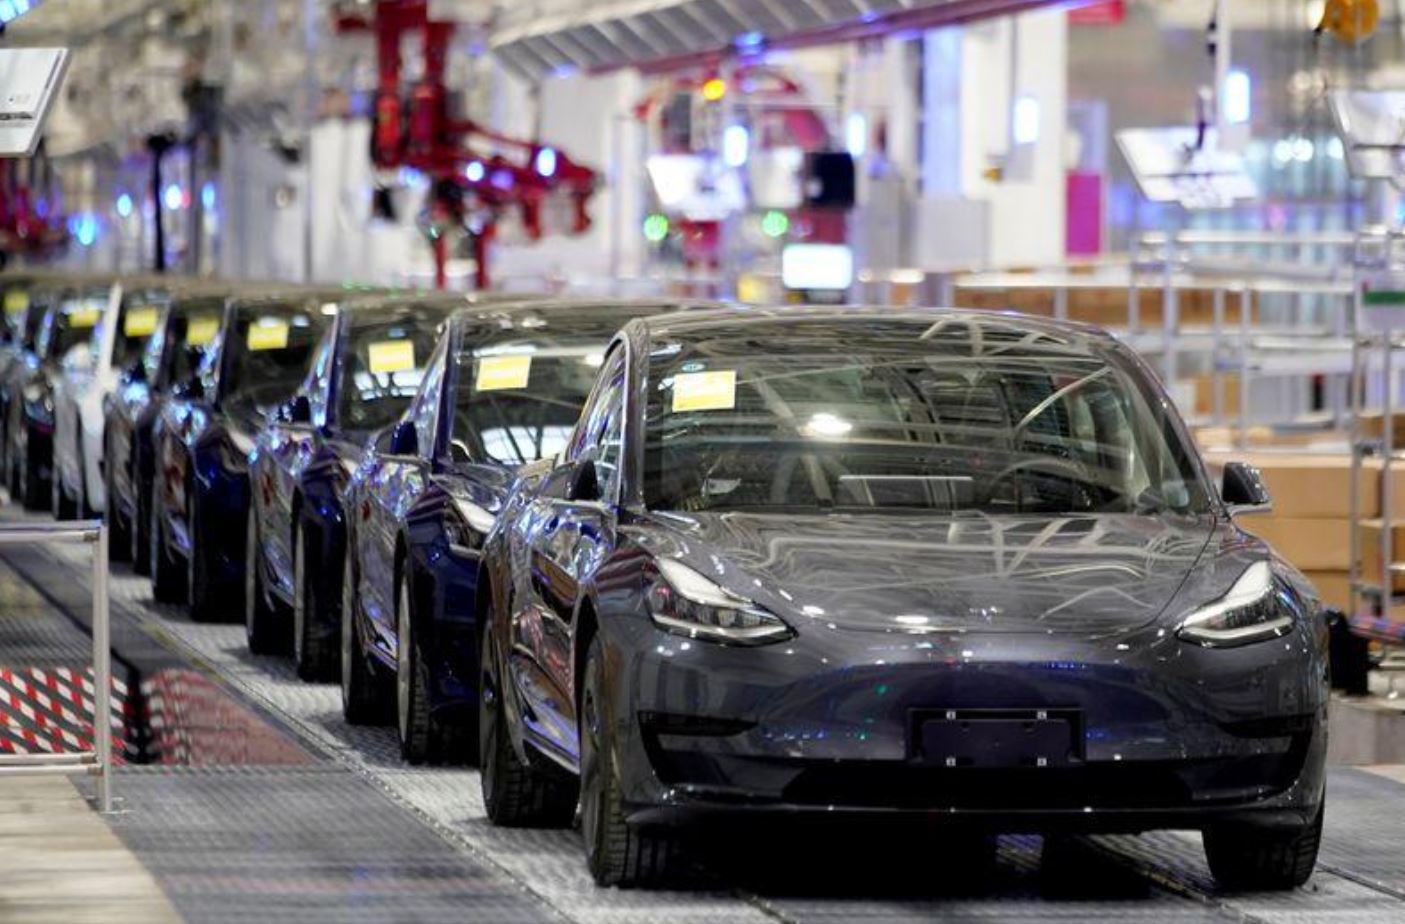 Tesla China sold 11,095 Model 3 vehicles in May, triple April's volume